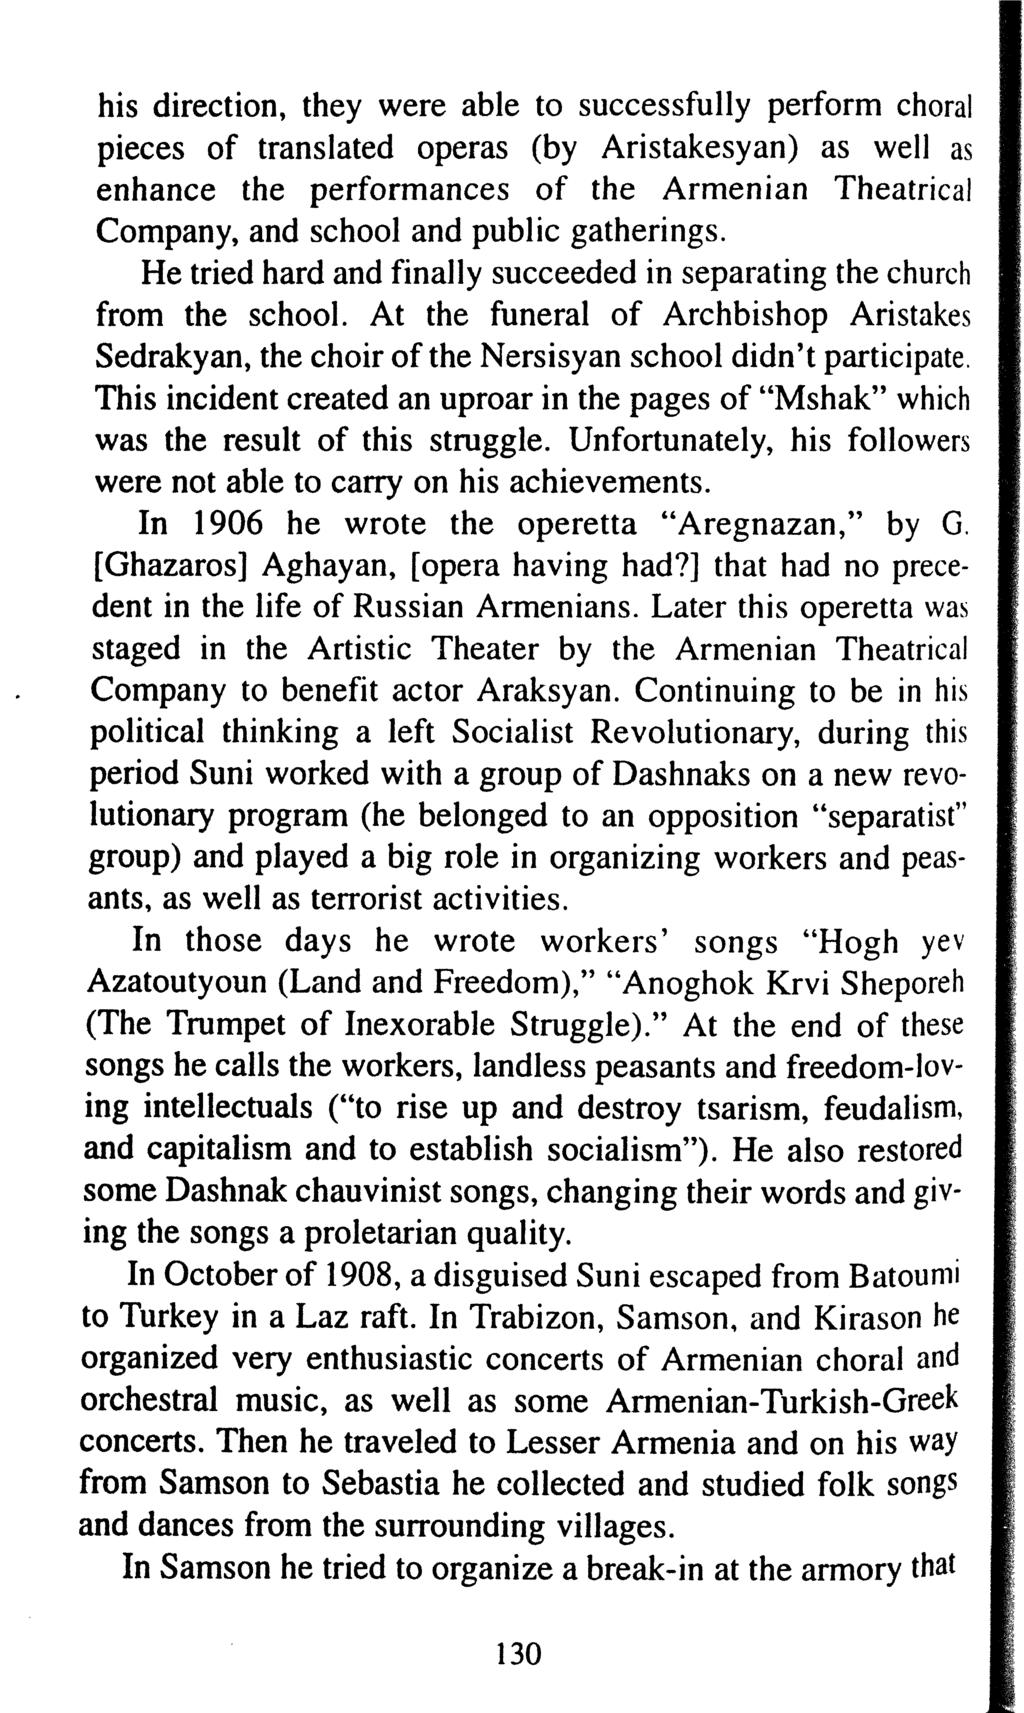 his direction, they were able to successfully perform choral pieces of translated operas (by Aristakesyan) as well as enhance the performances of the Armenian Theatrical Company, and school and